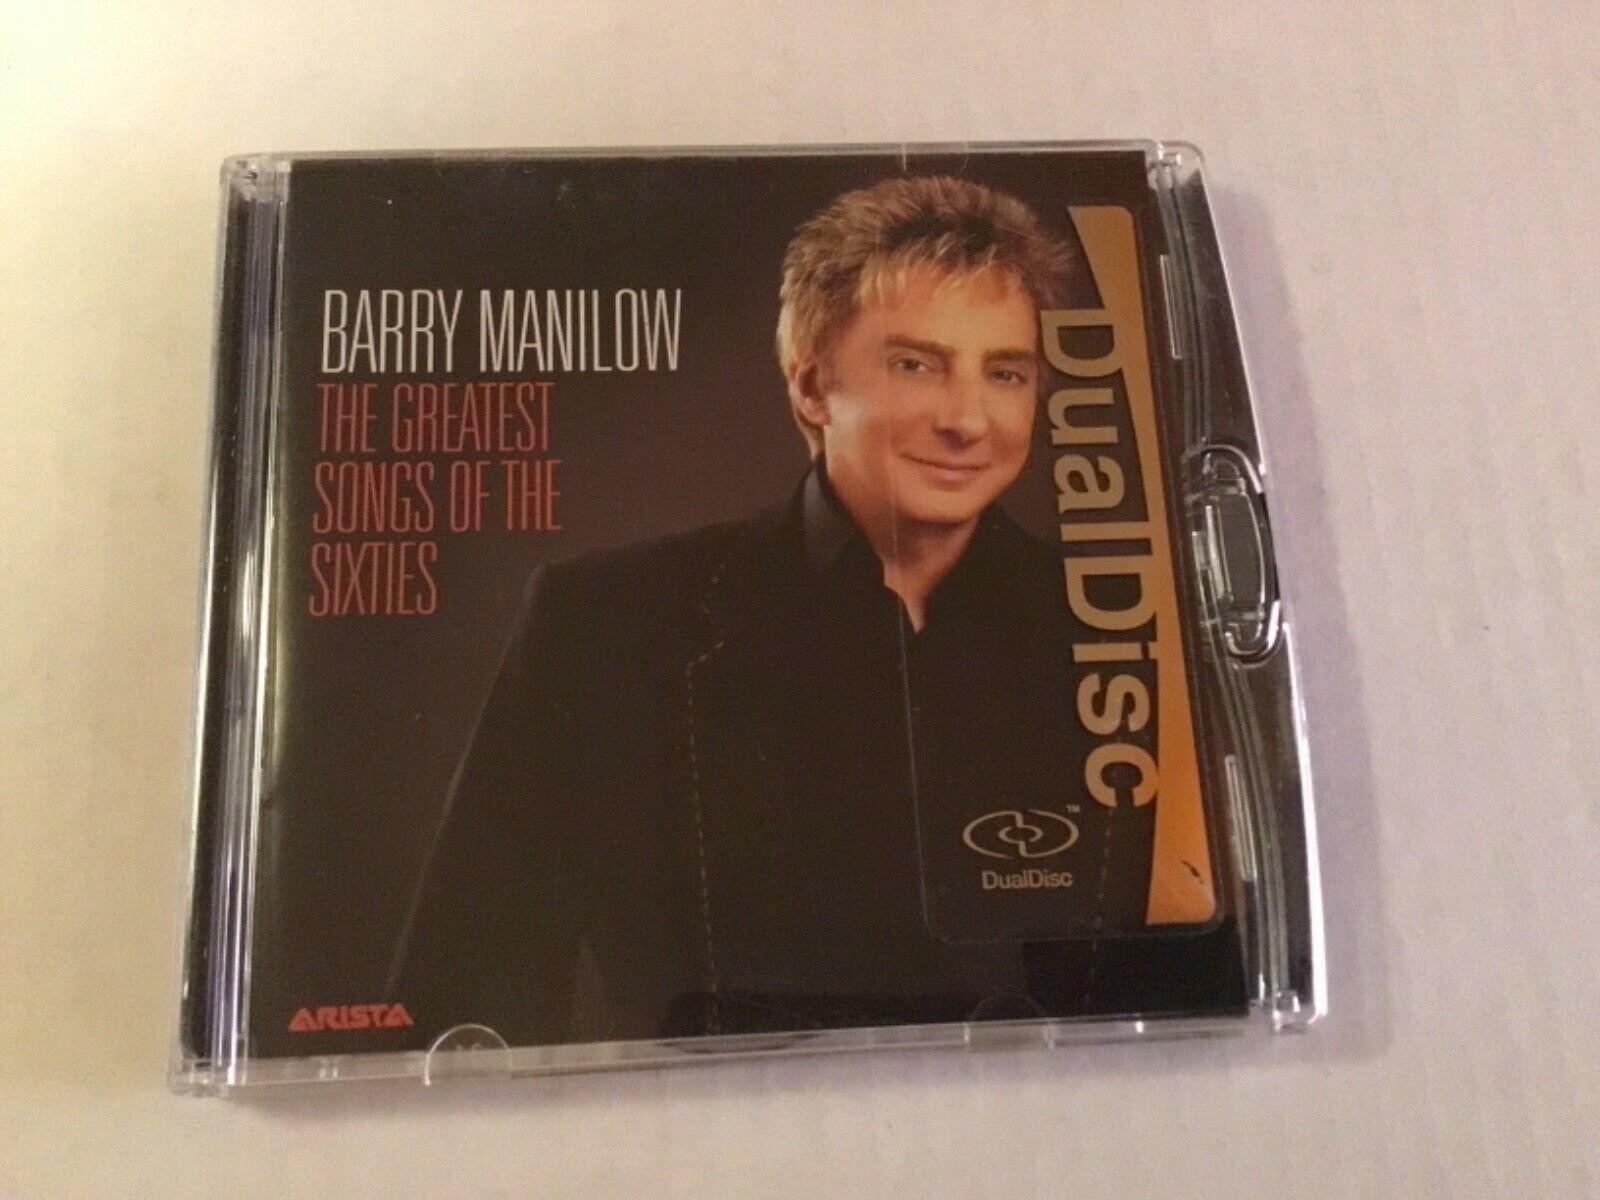 BARRY MANILOW DUAL DISC CD DVD - THE GREATEST SONGS OF THE SIXTIES - $5.00